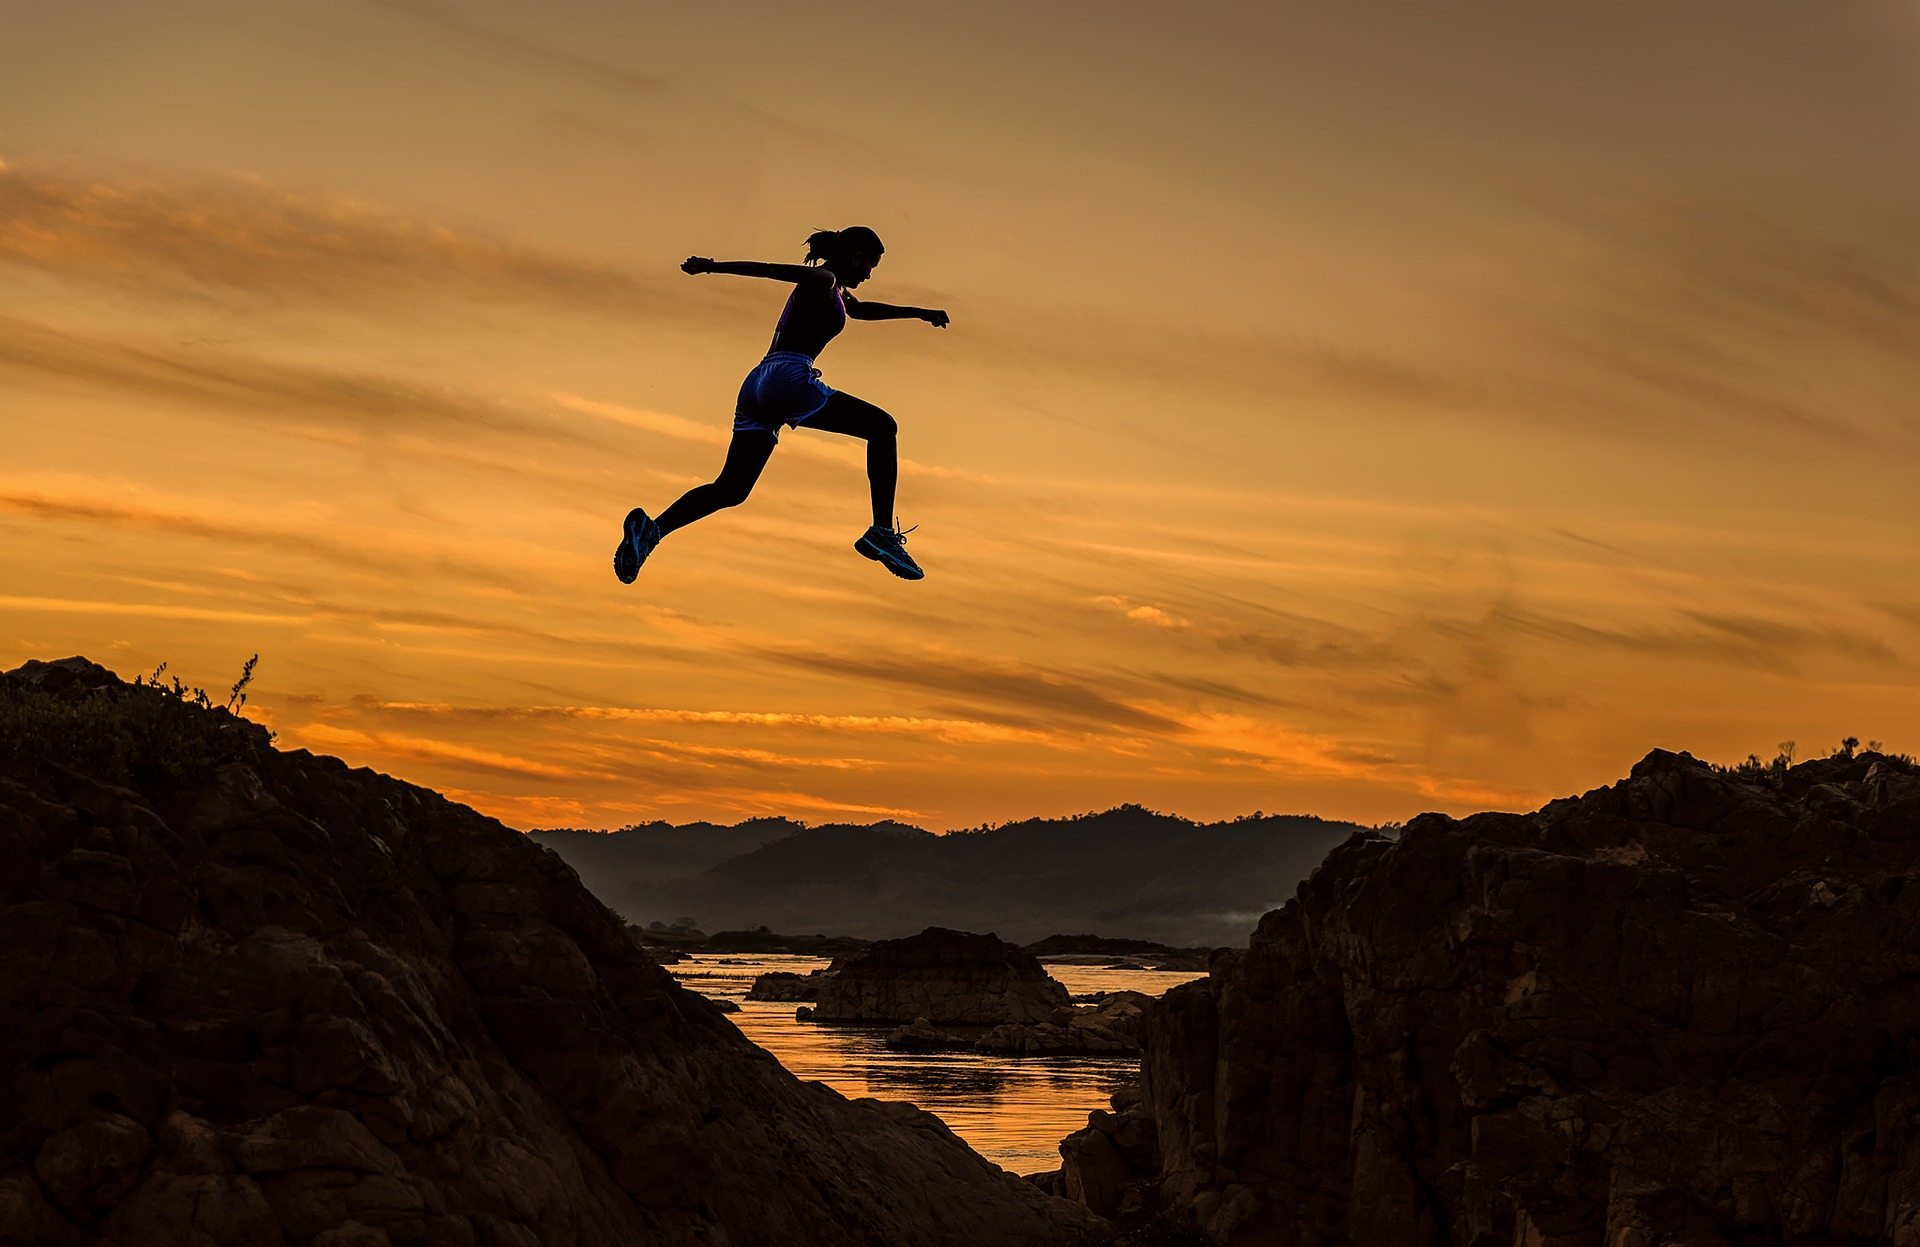 Image: A woman taking a leap of faith